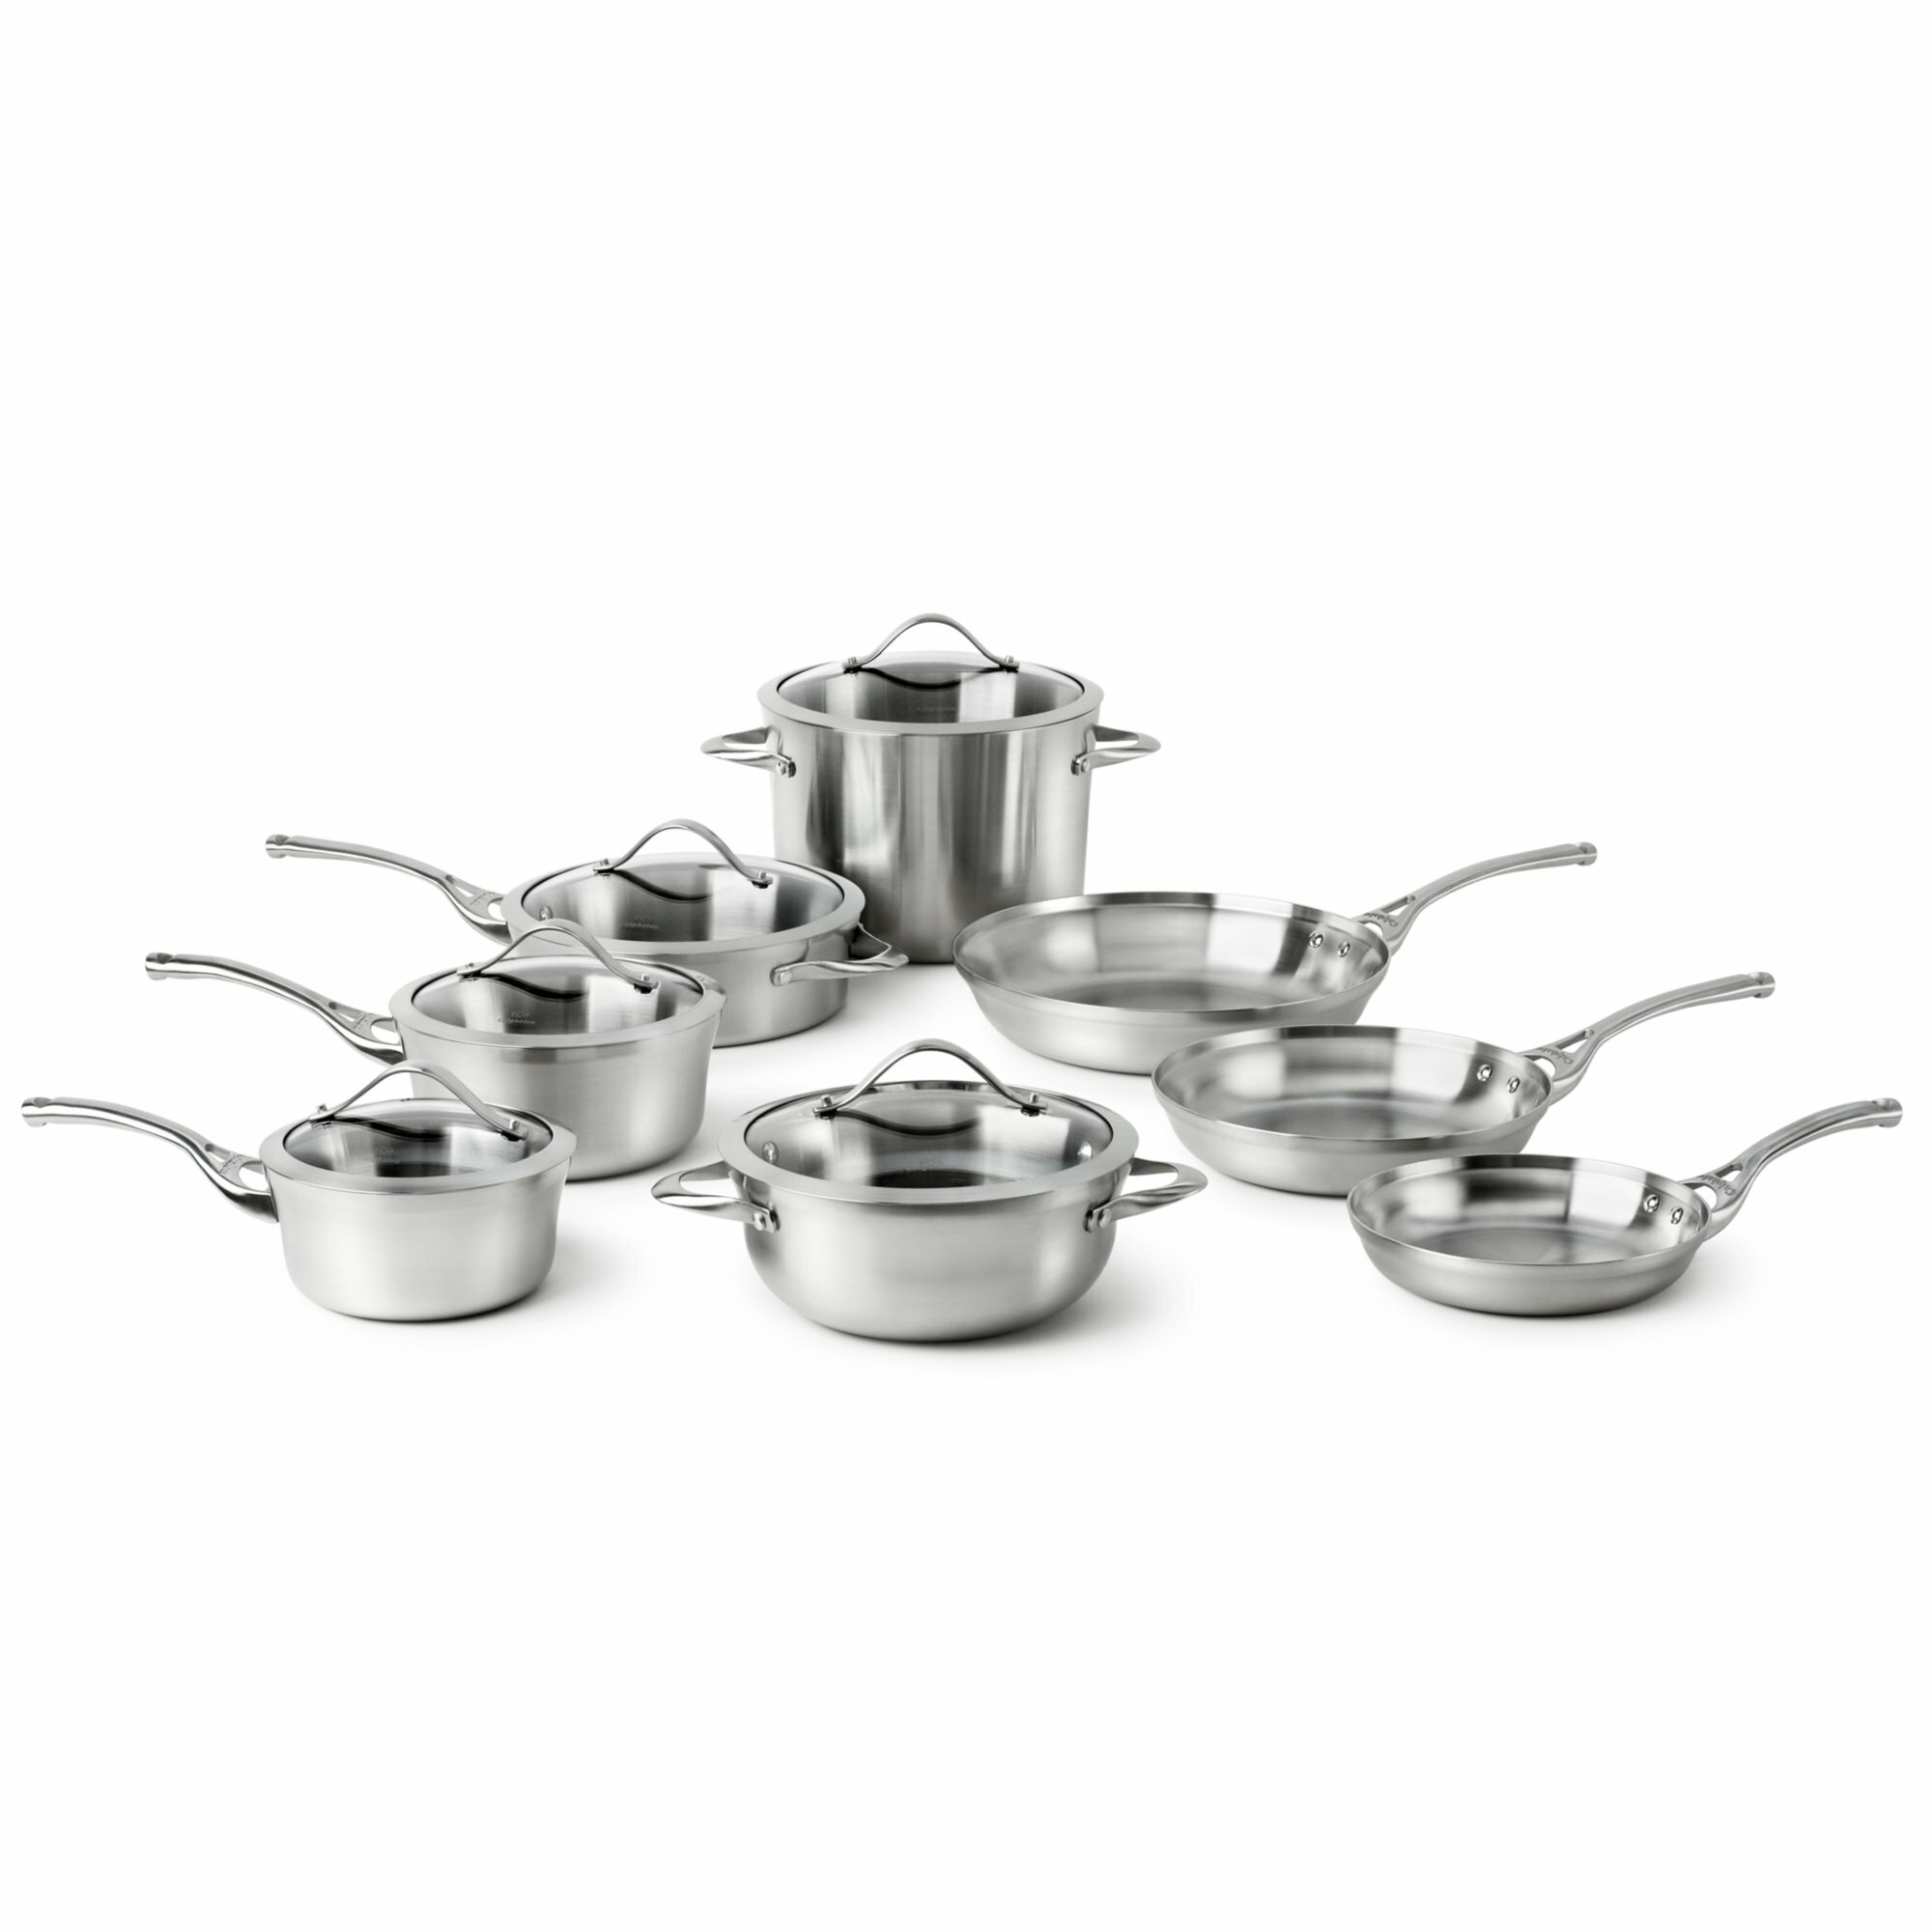 Calphalon Contemporary 13 Piece Stainless Steel Cookware Set ...